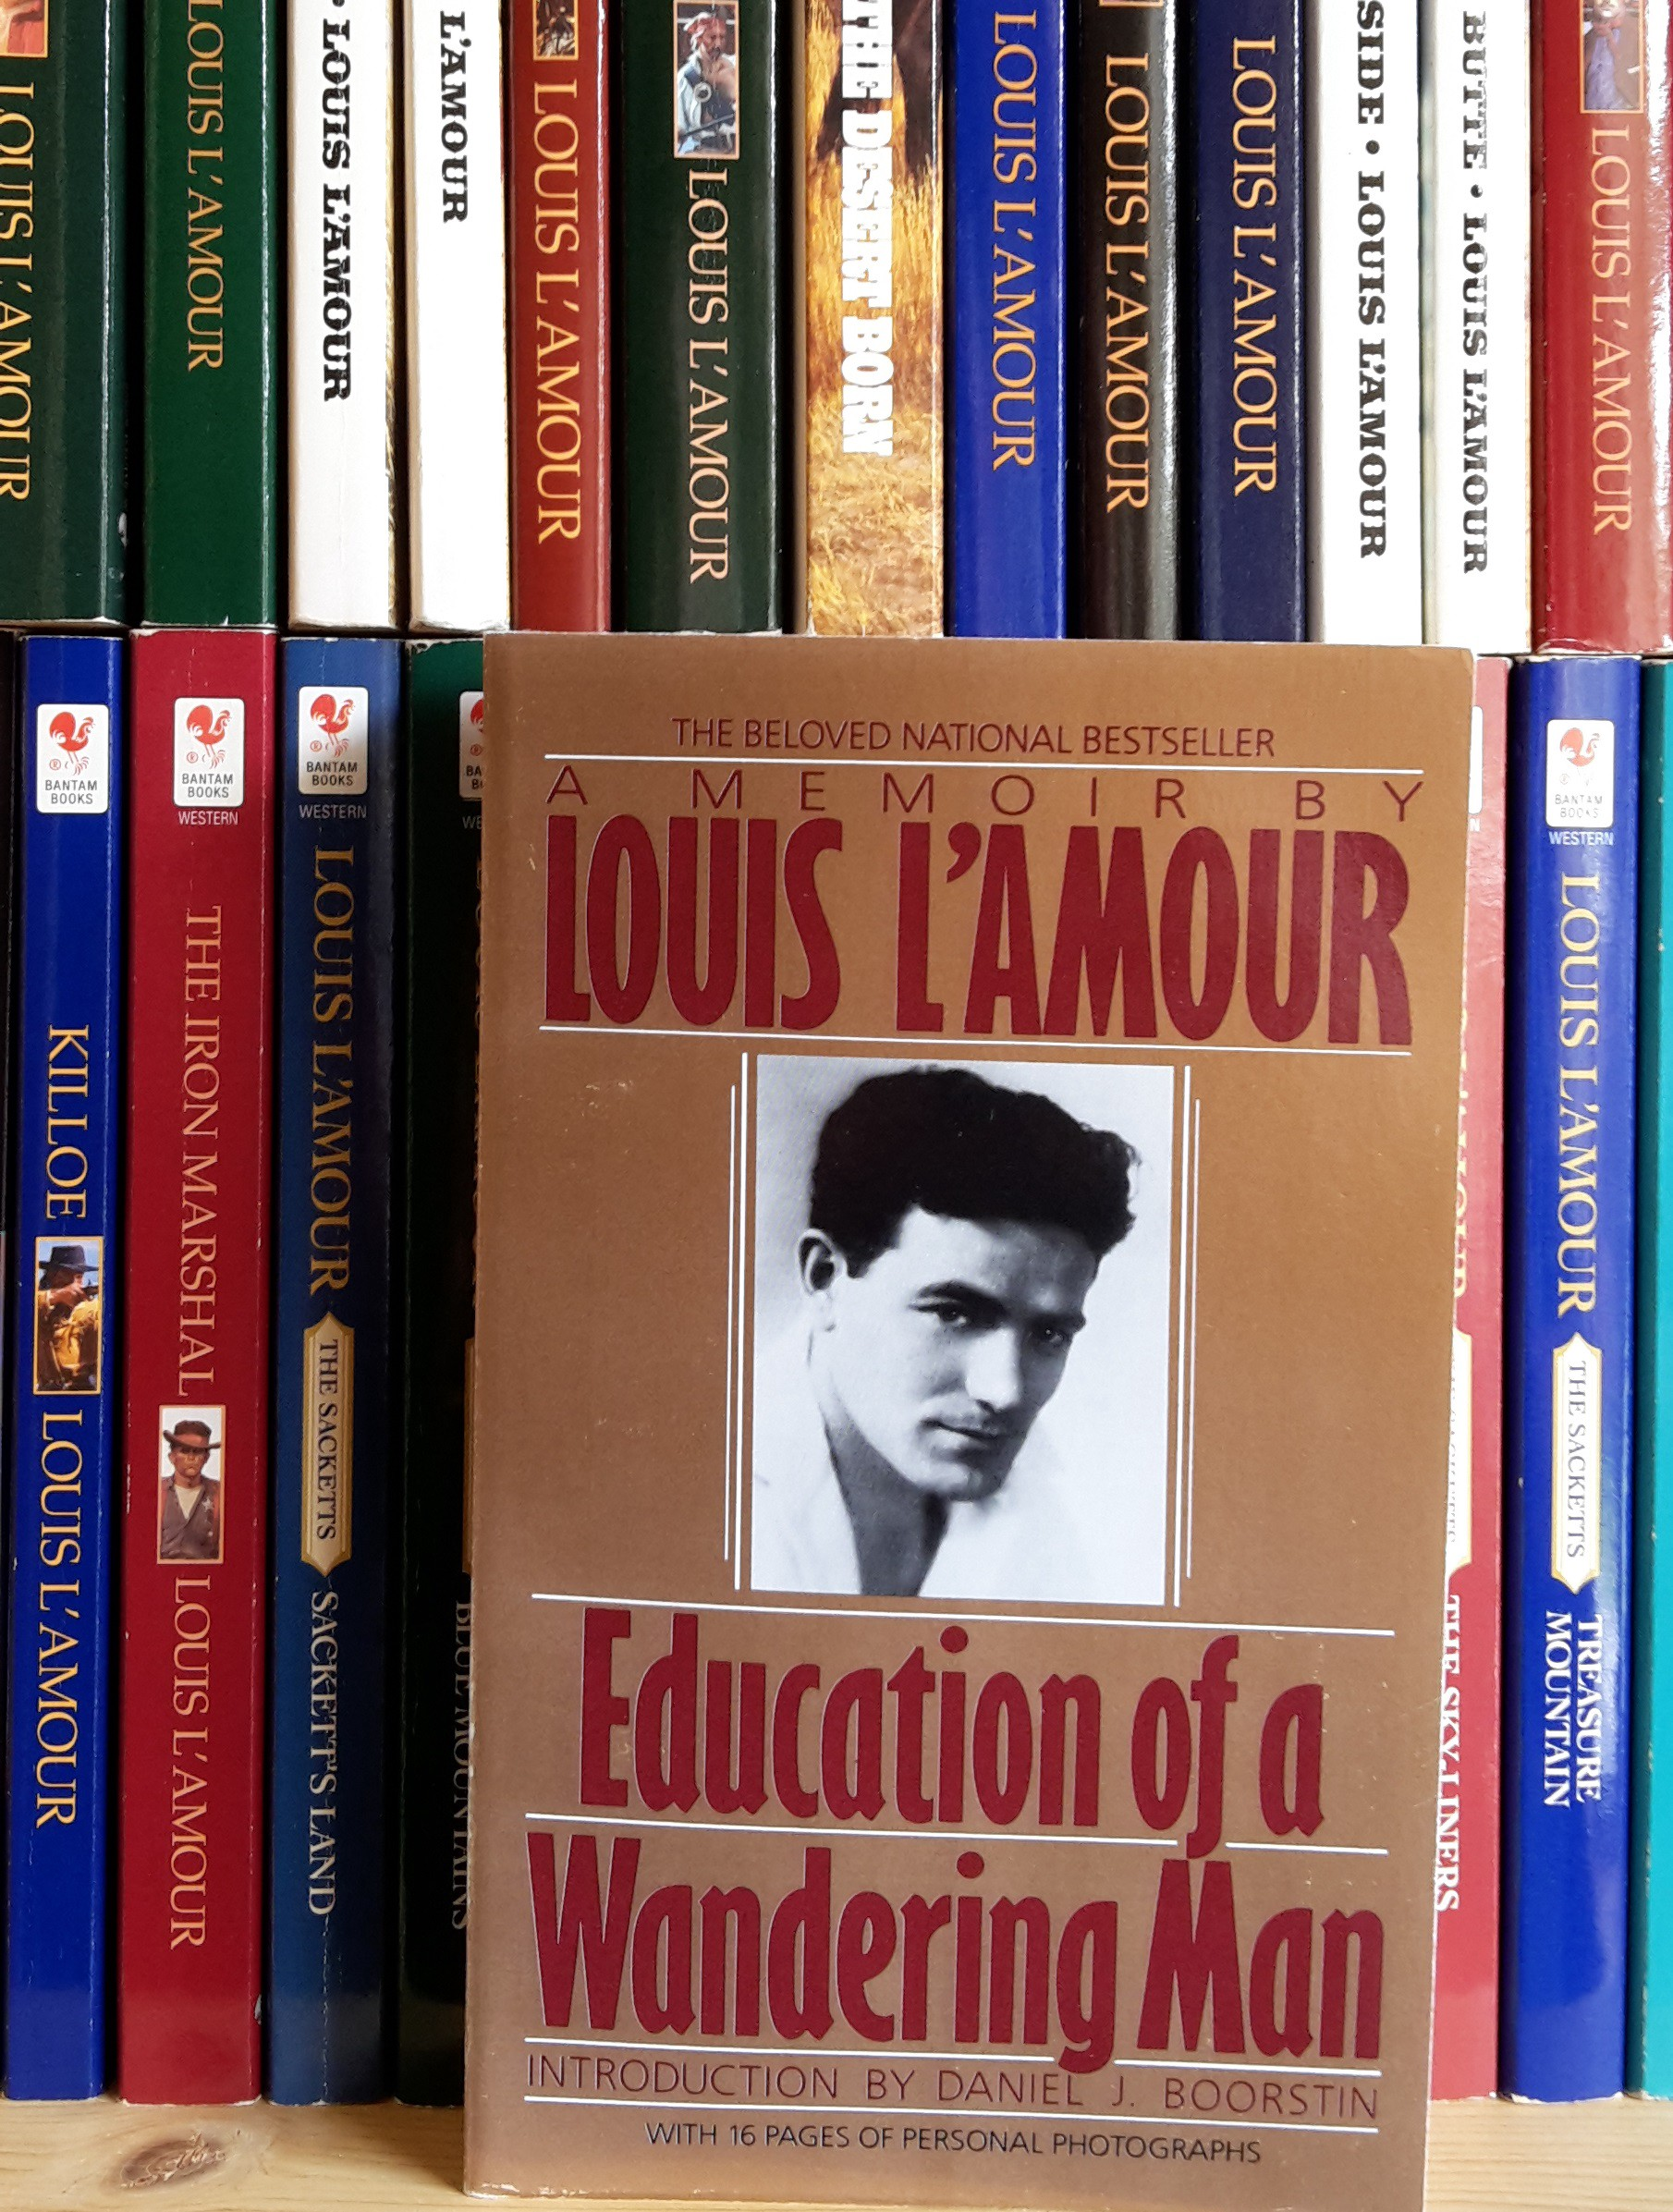 10 Lessons Writers Can Learn From Louis L'Amour | by Ryan Mizzen | The  Writing Cooperative